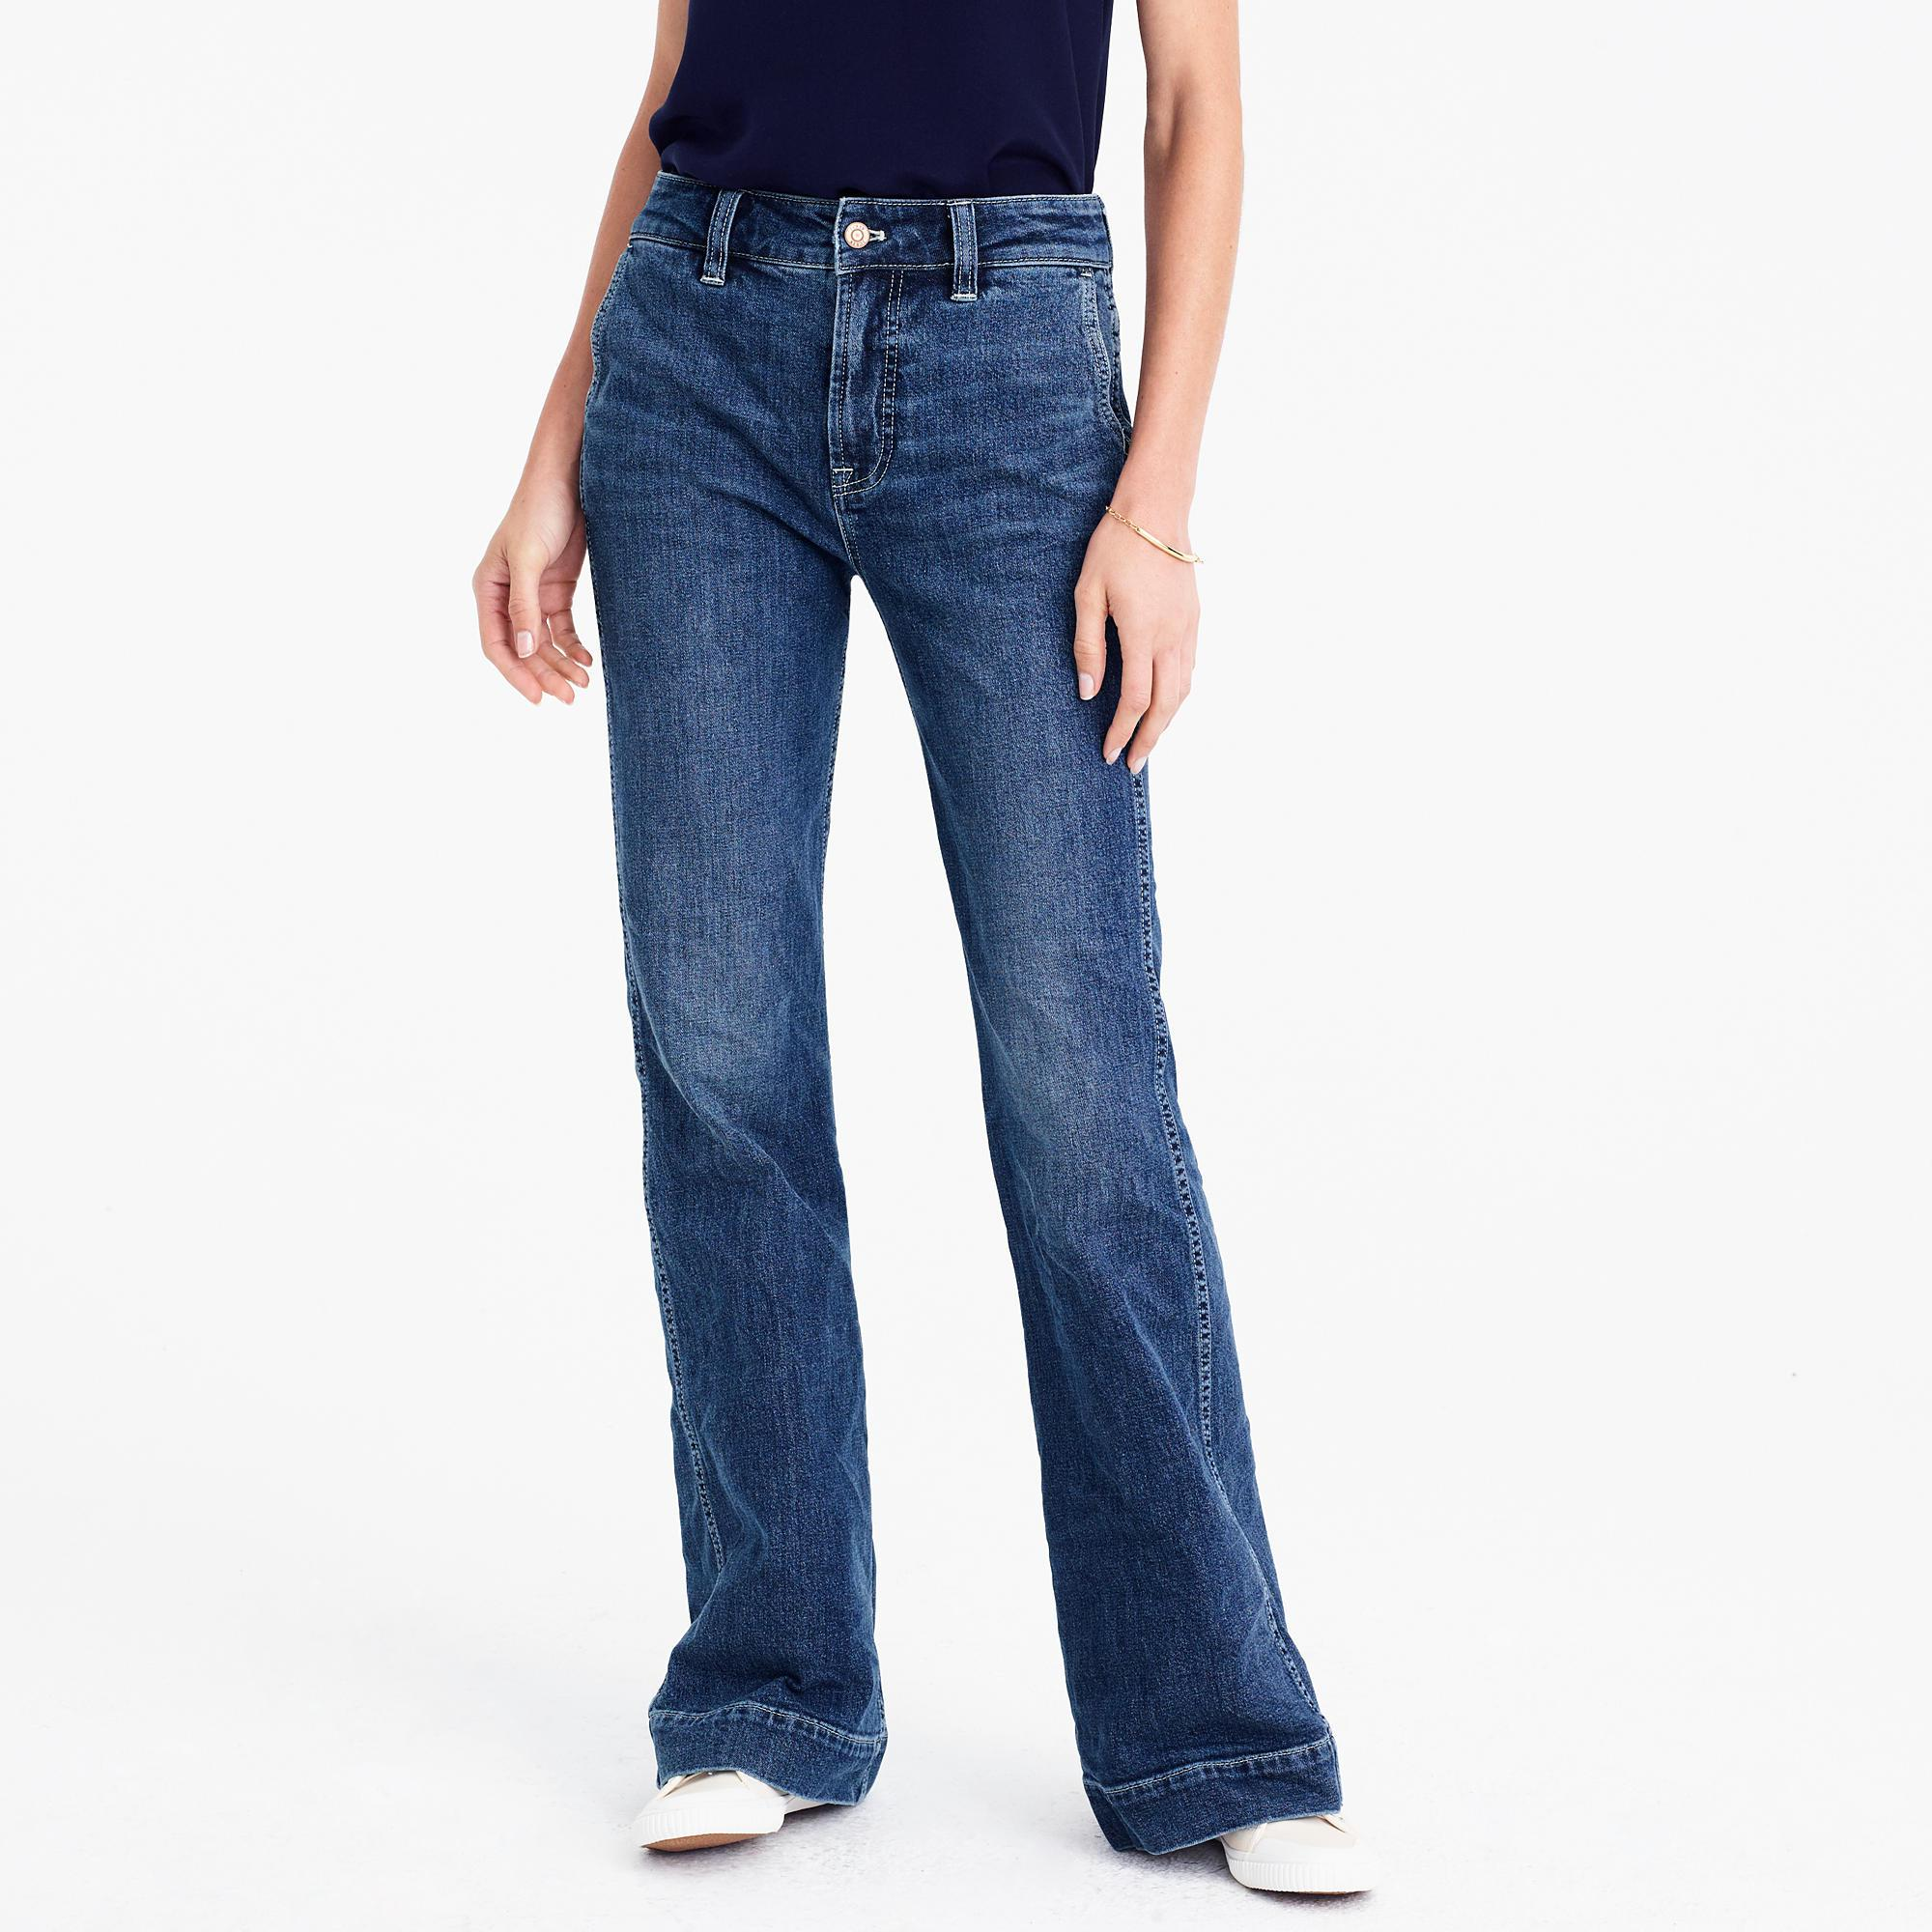 Cheap Best Store To Get Free Shipping Pay With Paypal DENIM - Denim trousers Loveday Jeans Cheap Price In China Clearance Ebay Super Specials 0fc930ozIS